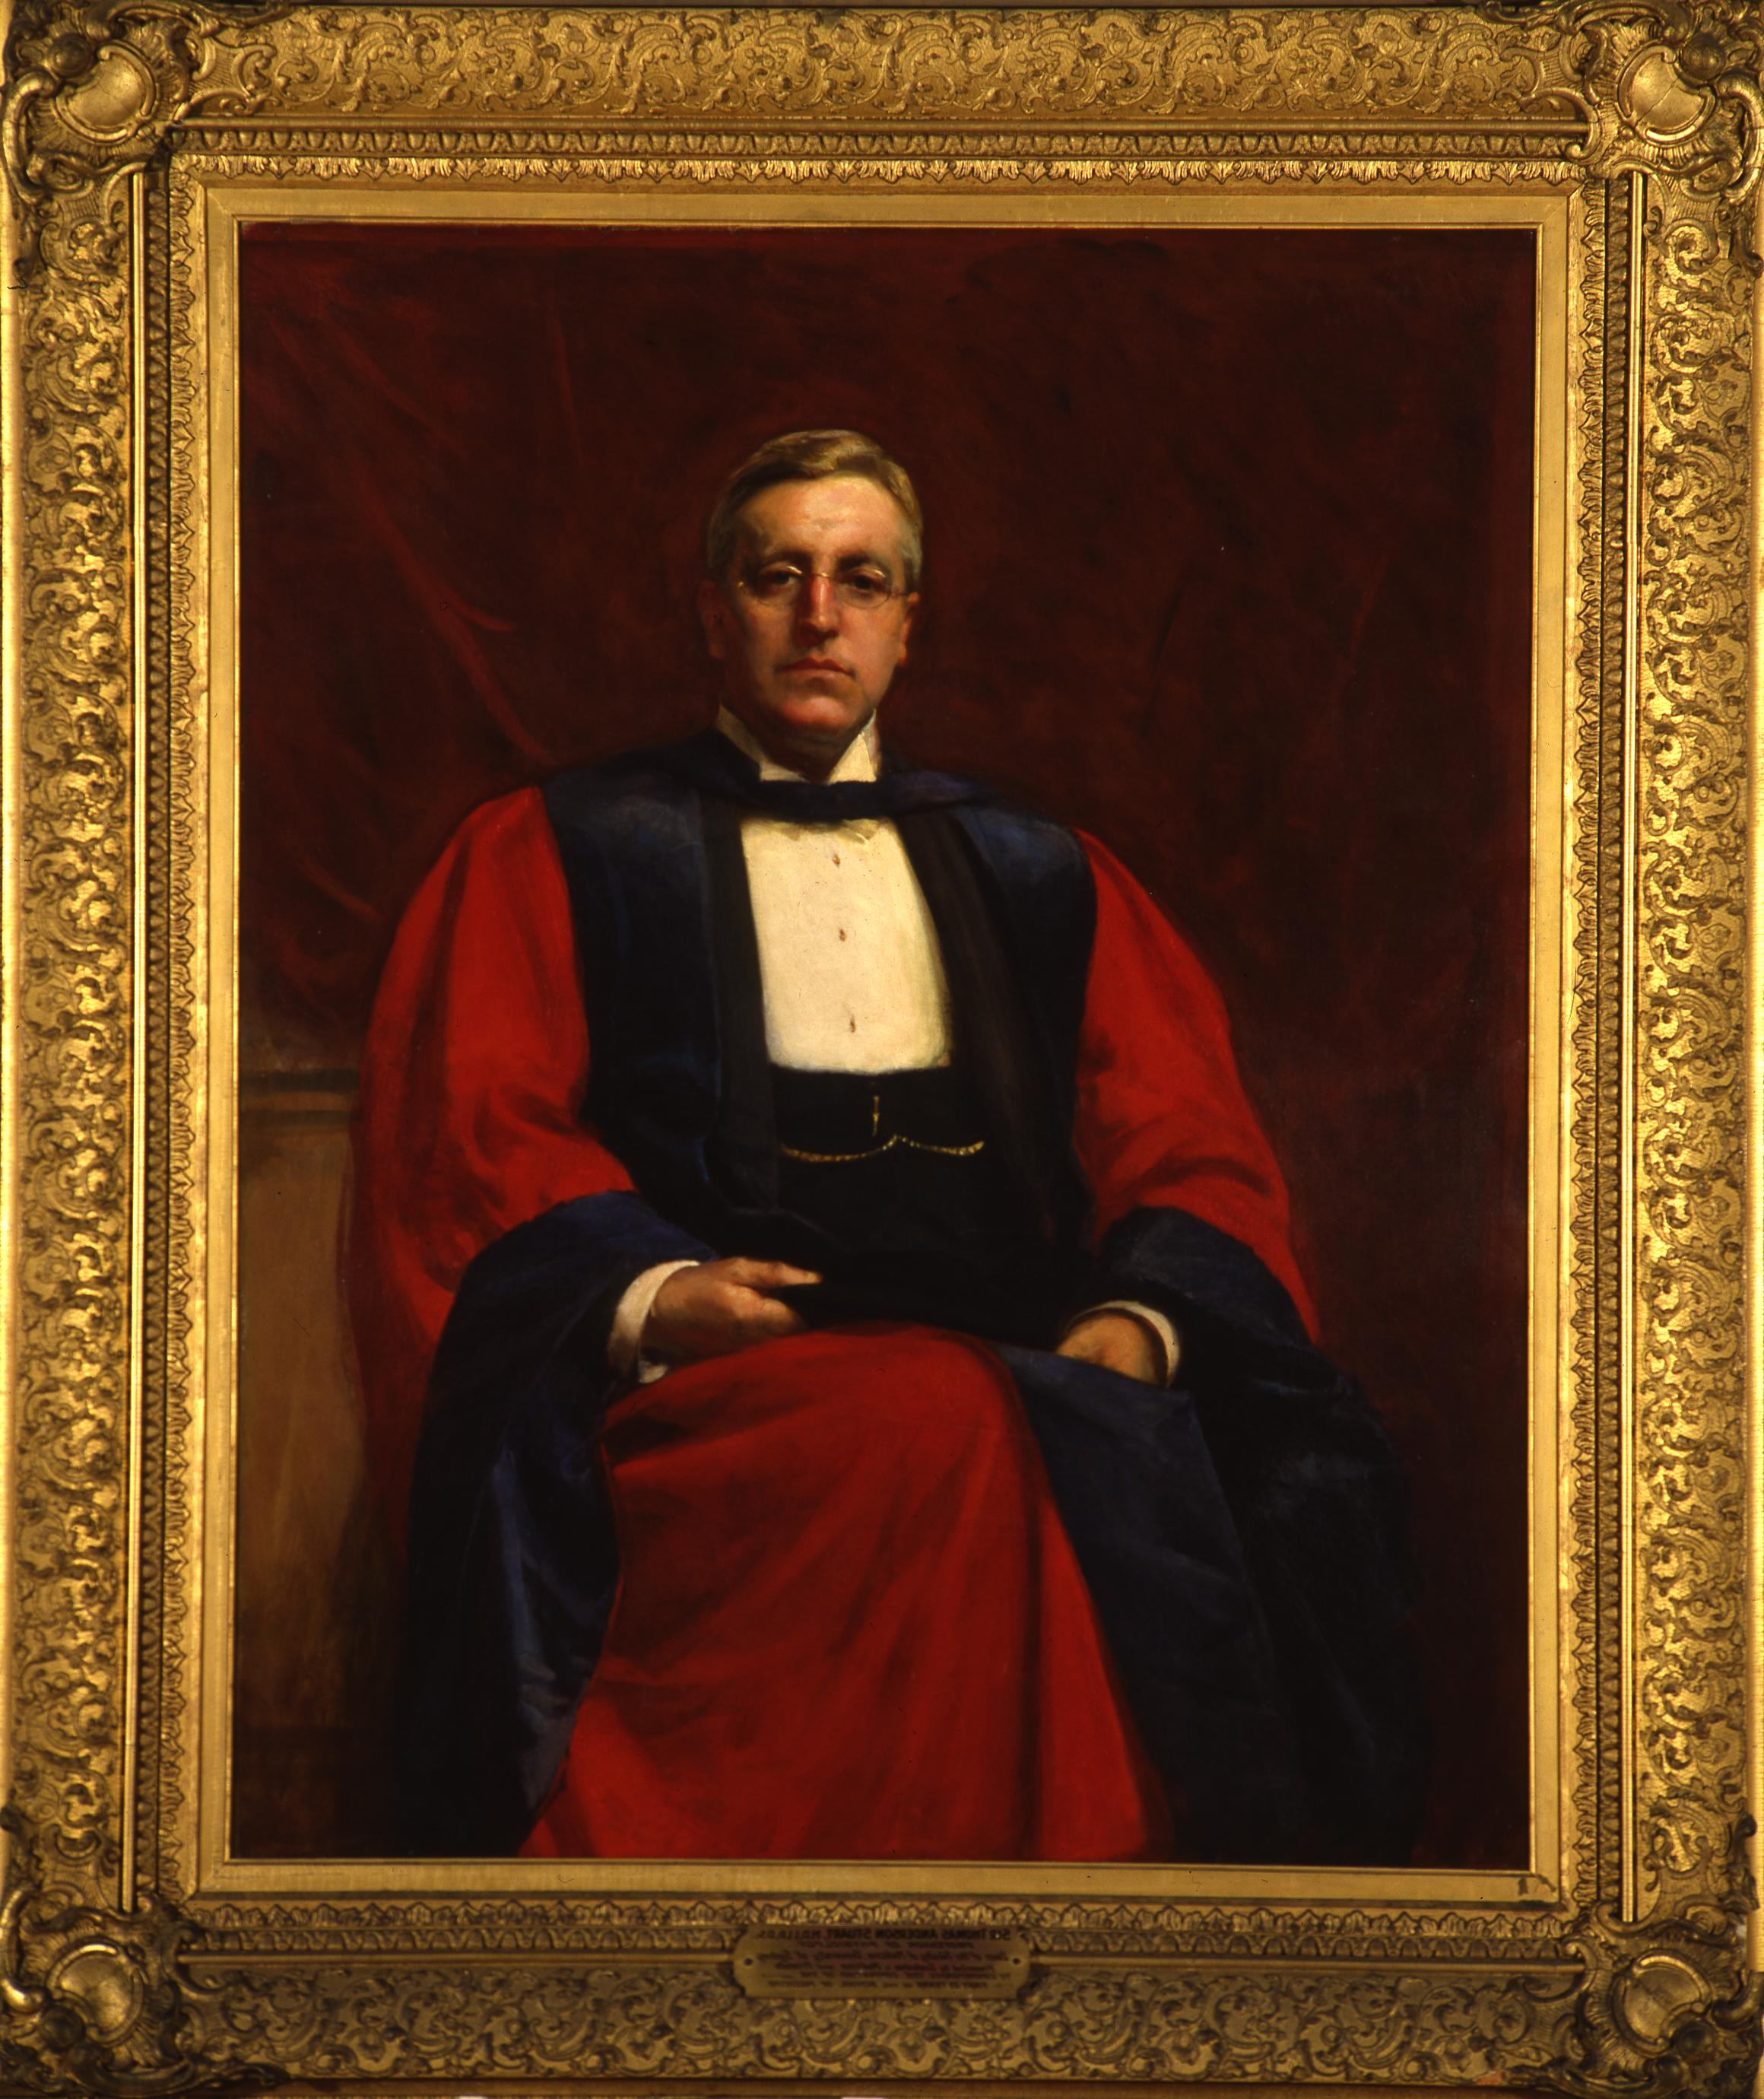 Portrait of Sir Thomas Peter Anderson Stuart by Sir John Longstaff, Oil painting, Courtesy of University Art Gallery, Copyright University of Sydney